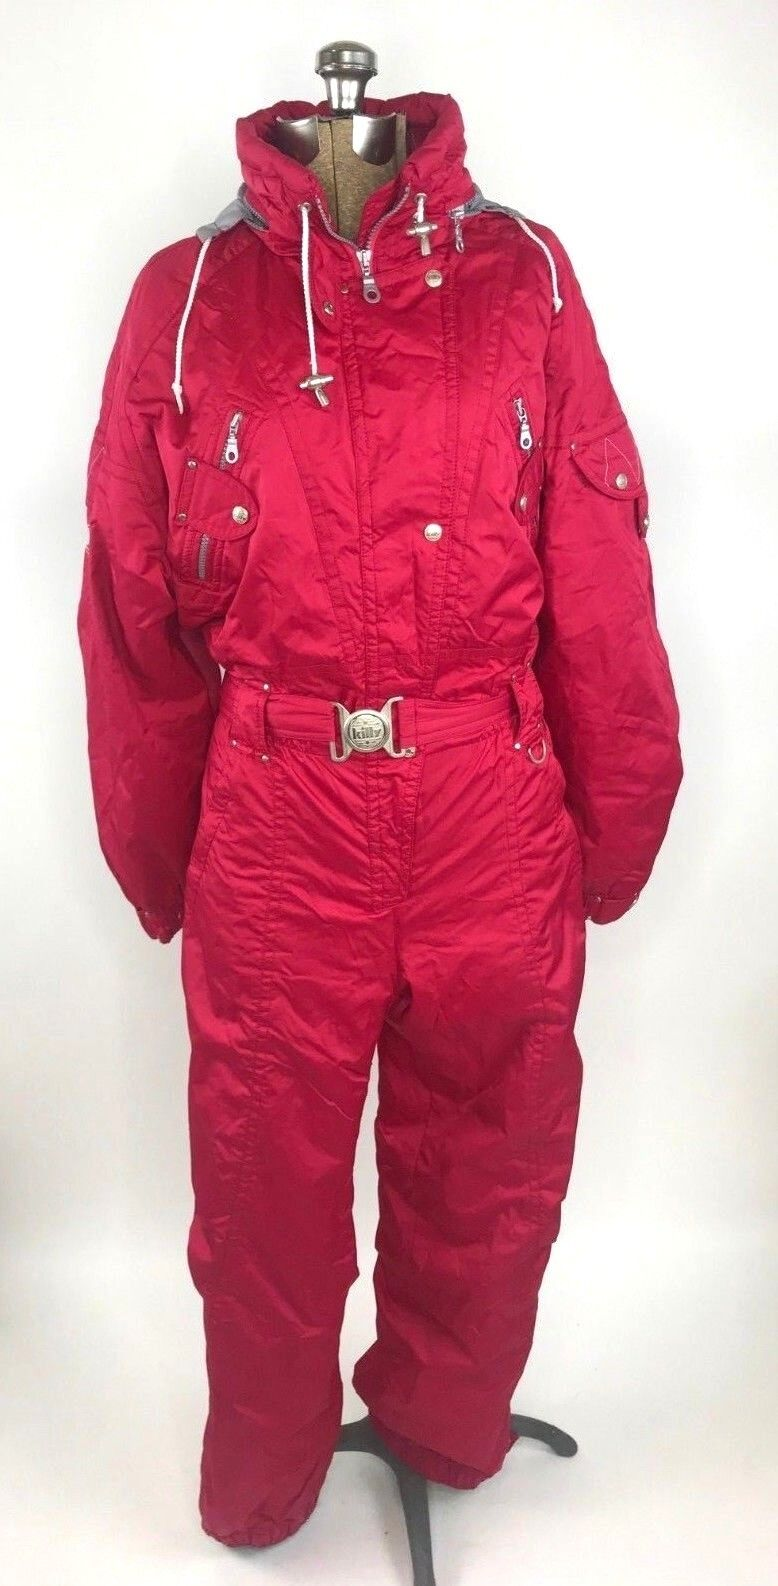 Killy Womens Ski Suit Size 8 Pink Hooded Belted One Piece Snowsuit Recco System